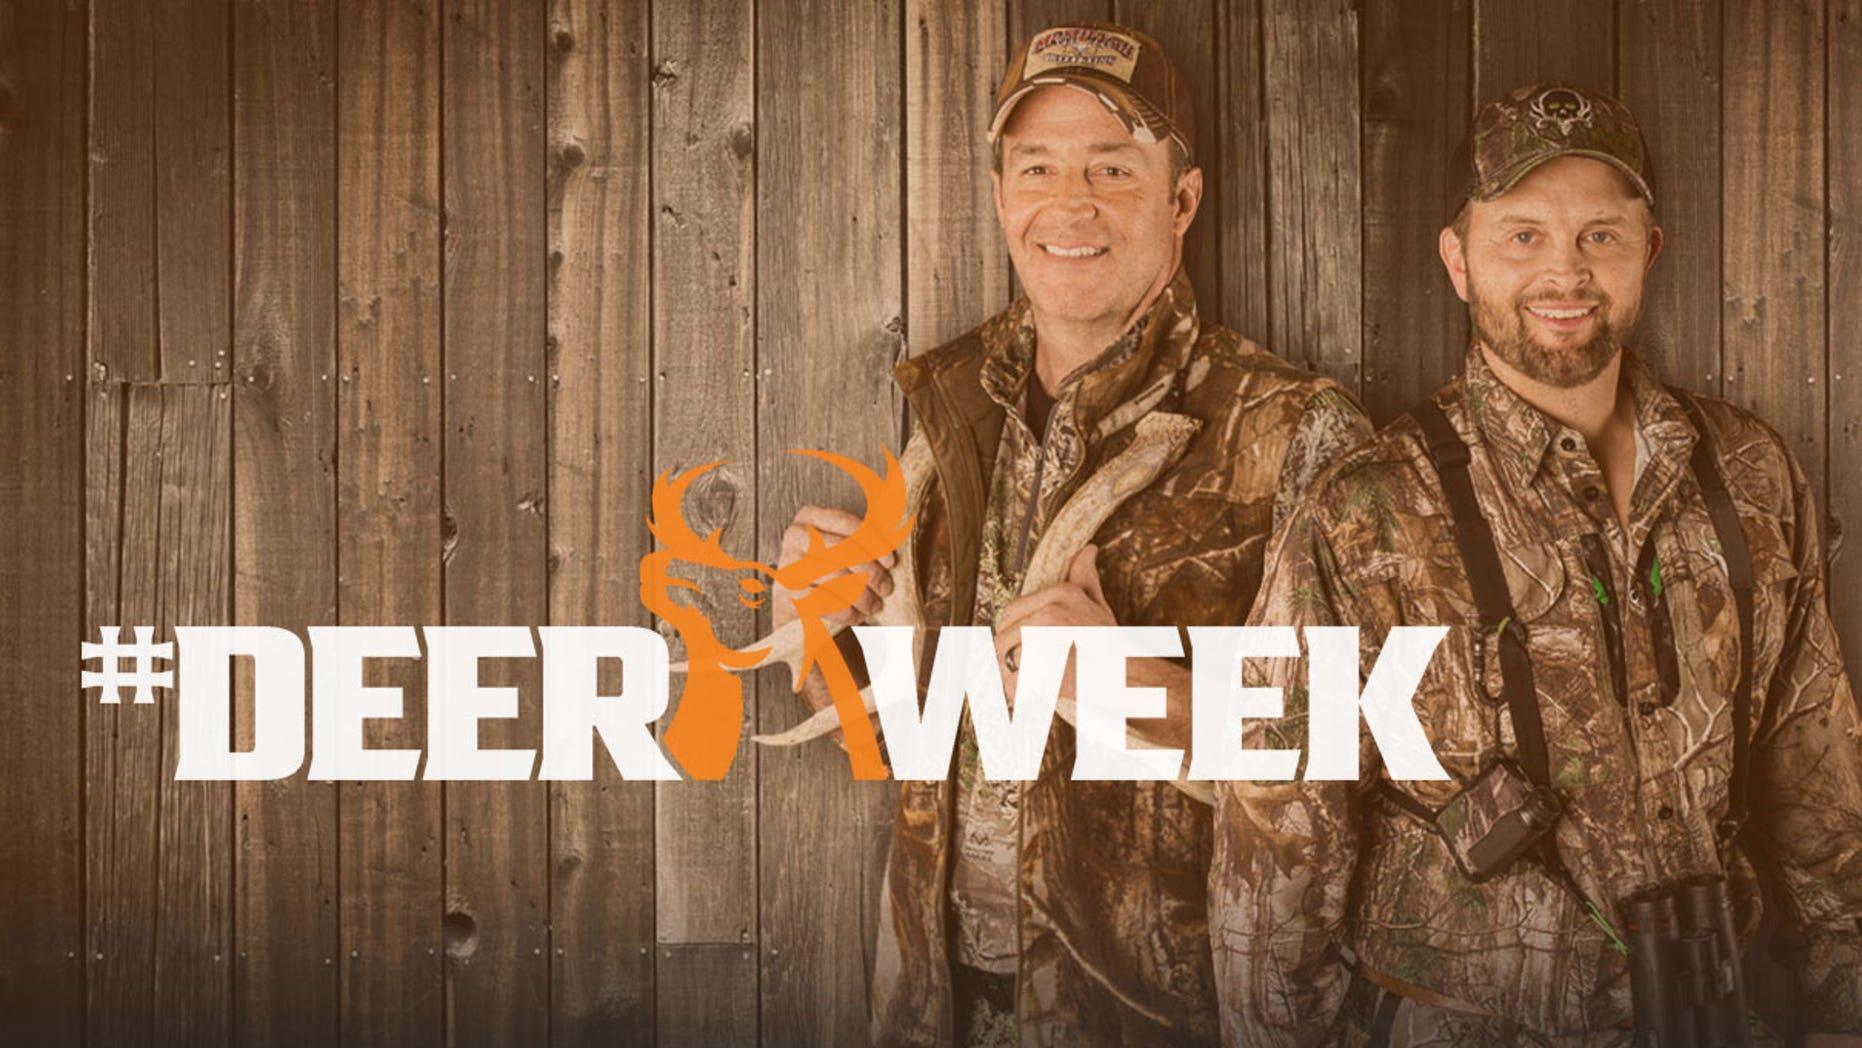 Outdoor Channel and Sportsman Channel are kicking off their first Deer Week on Oct. 15.